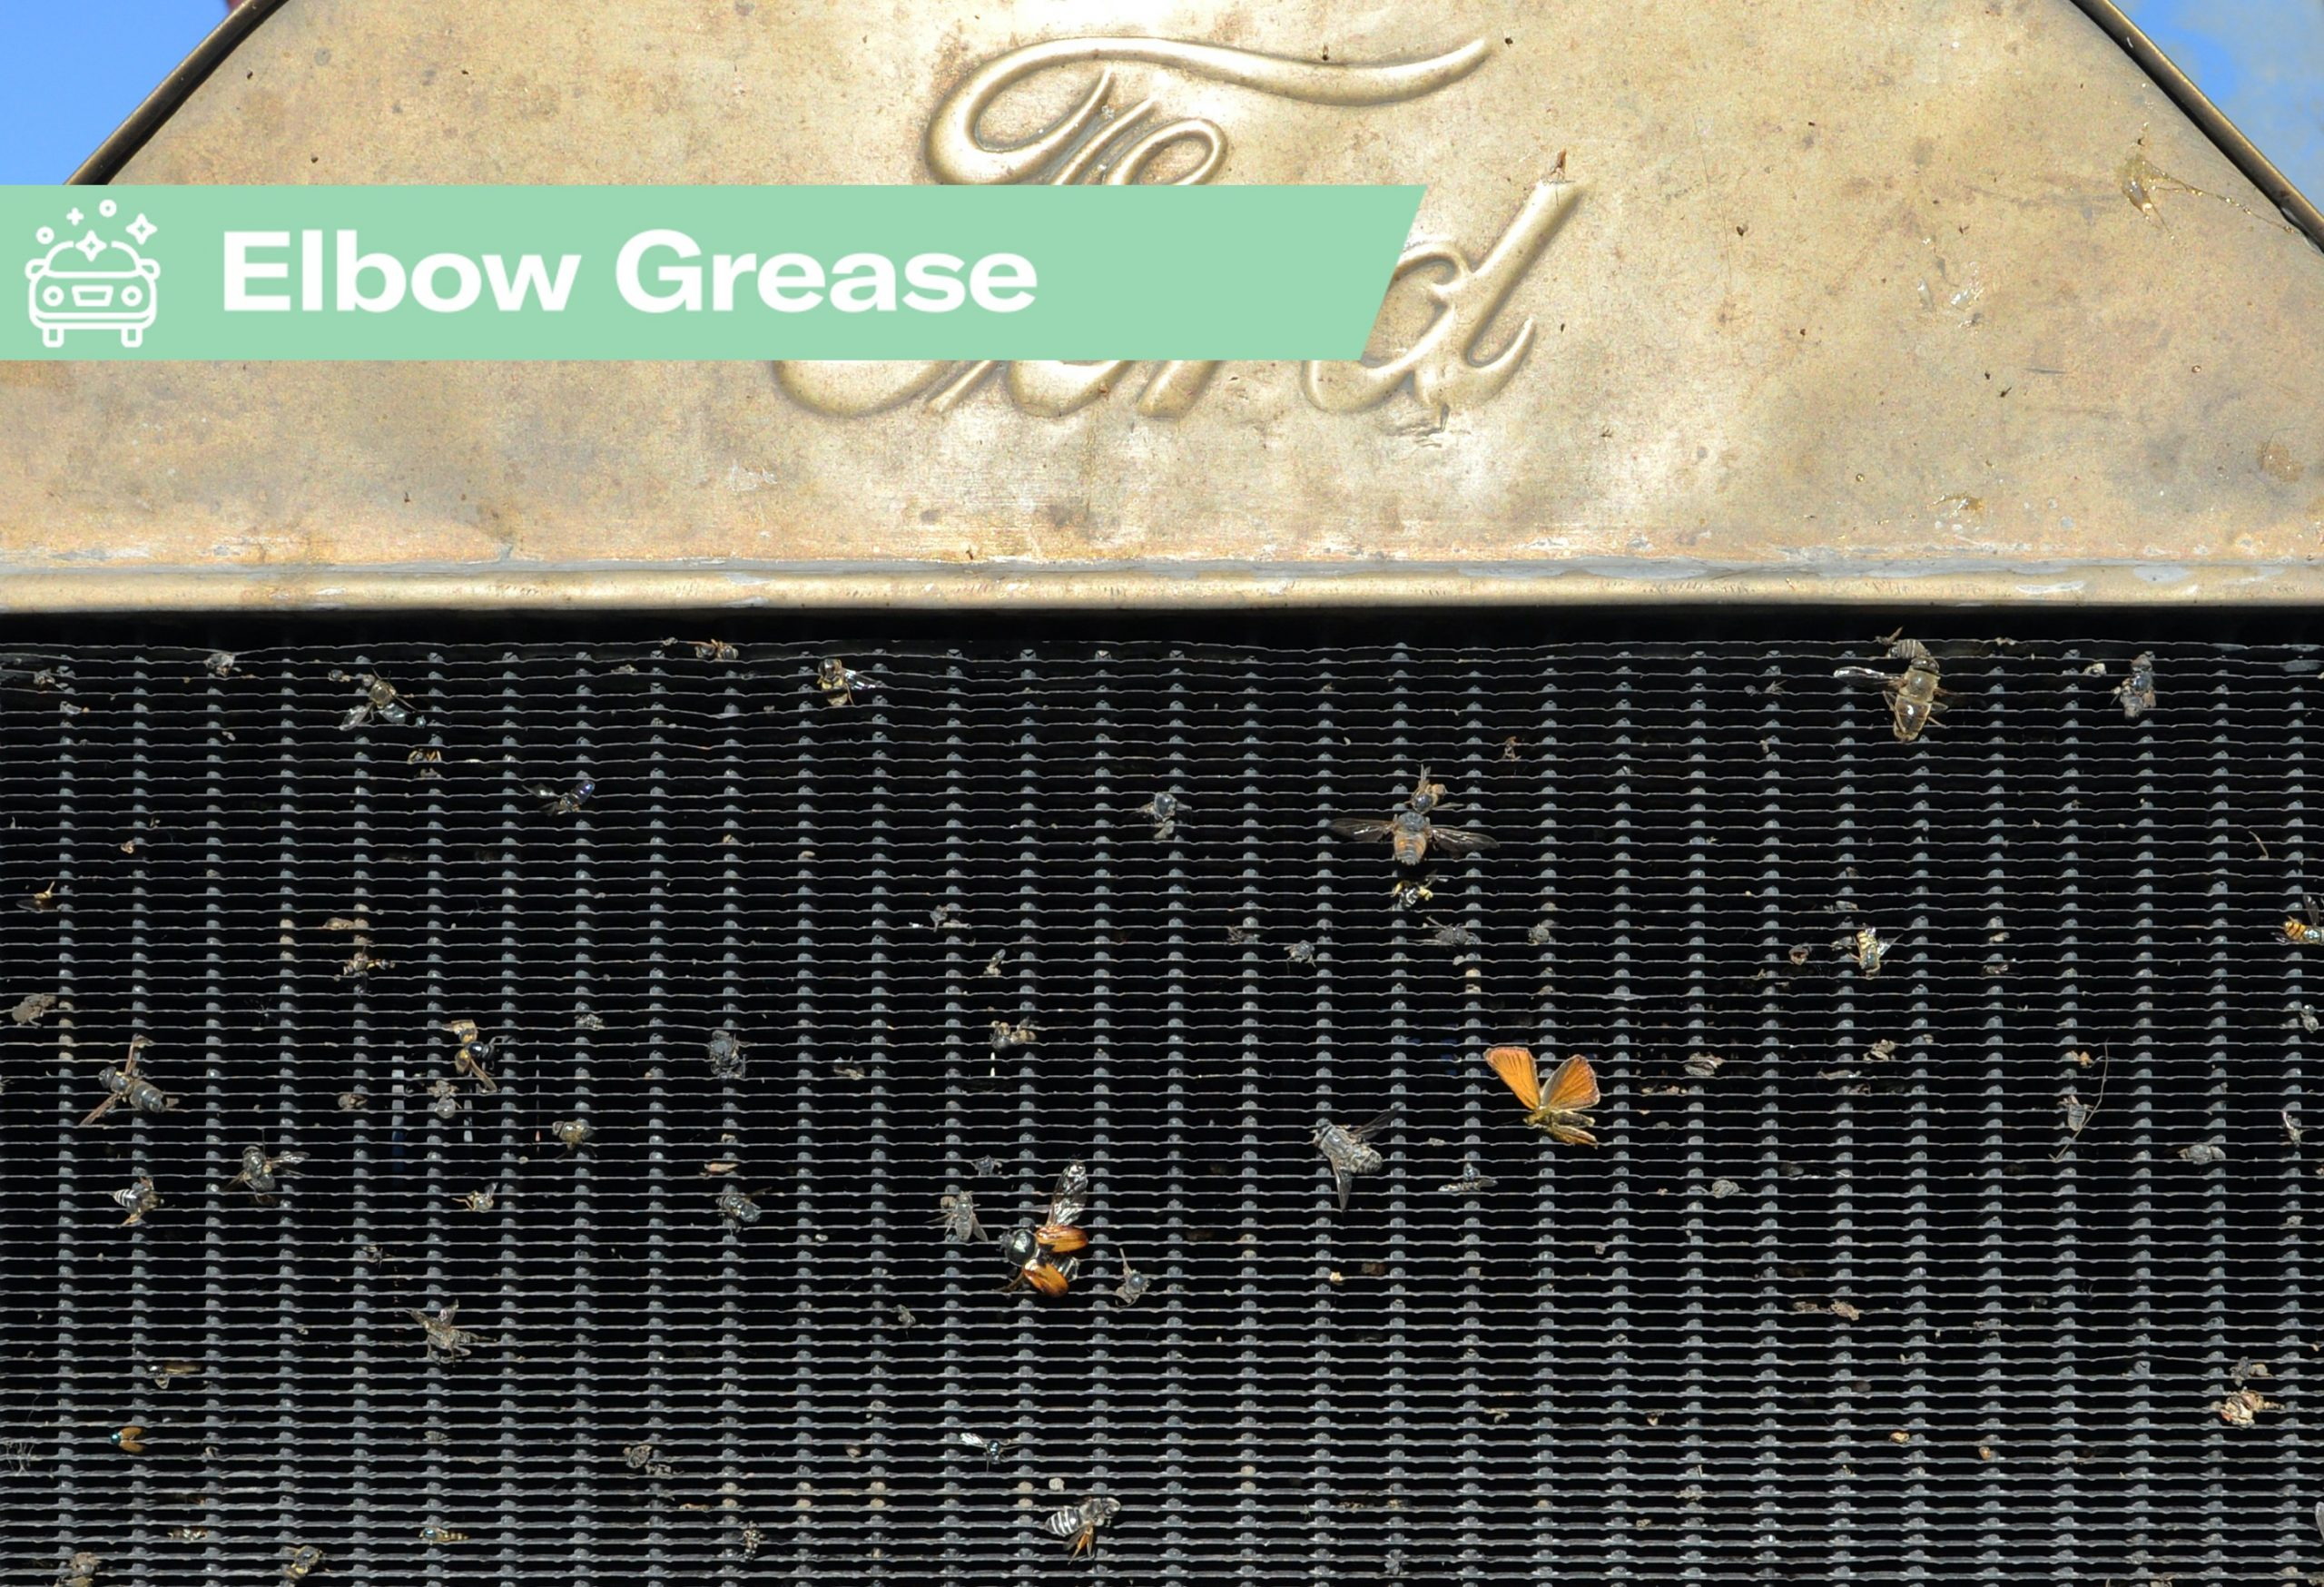 Elbow Grease: The secrets to removing bugs and flies from the front of a car